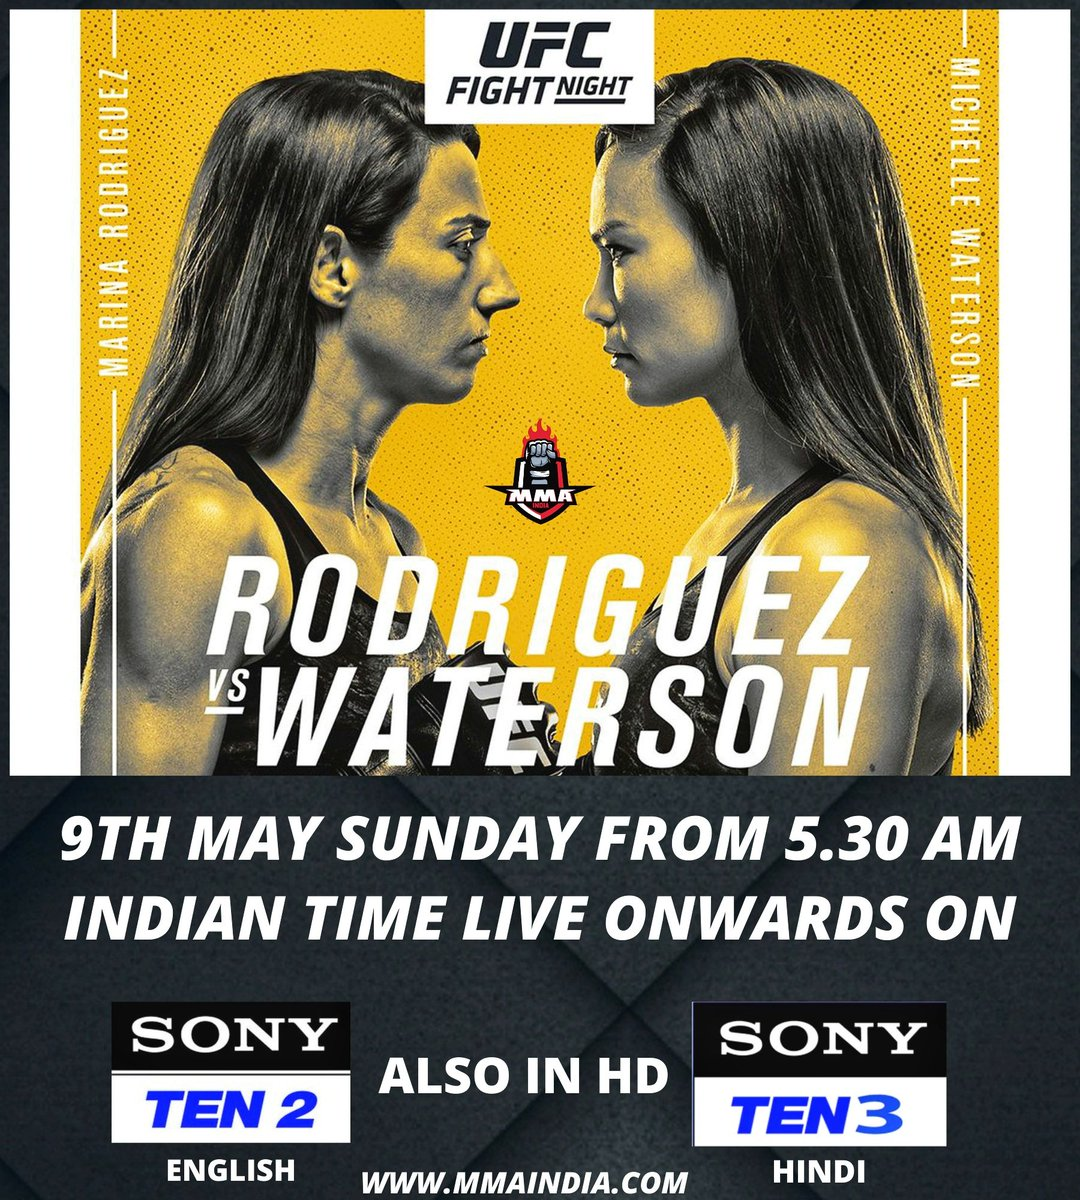 🇧🇷 @wmmarz vs 🇺🇸 @karatehottiemma happens TOMORROW! 🇮🇳  Catch the live action 👇  📺 Sony TEN 2 (ENG), Sony TEN 3 (HIN) 📅 SUN, 9th MAY ⌚ 5:30 AM  #UFC #MMA @SonySportsIndia https://t.co/mMd1abdvRv